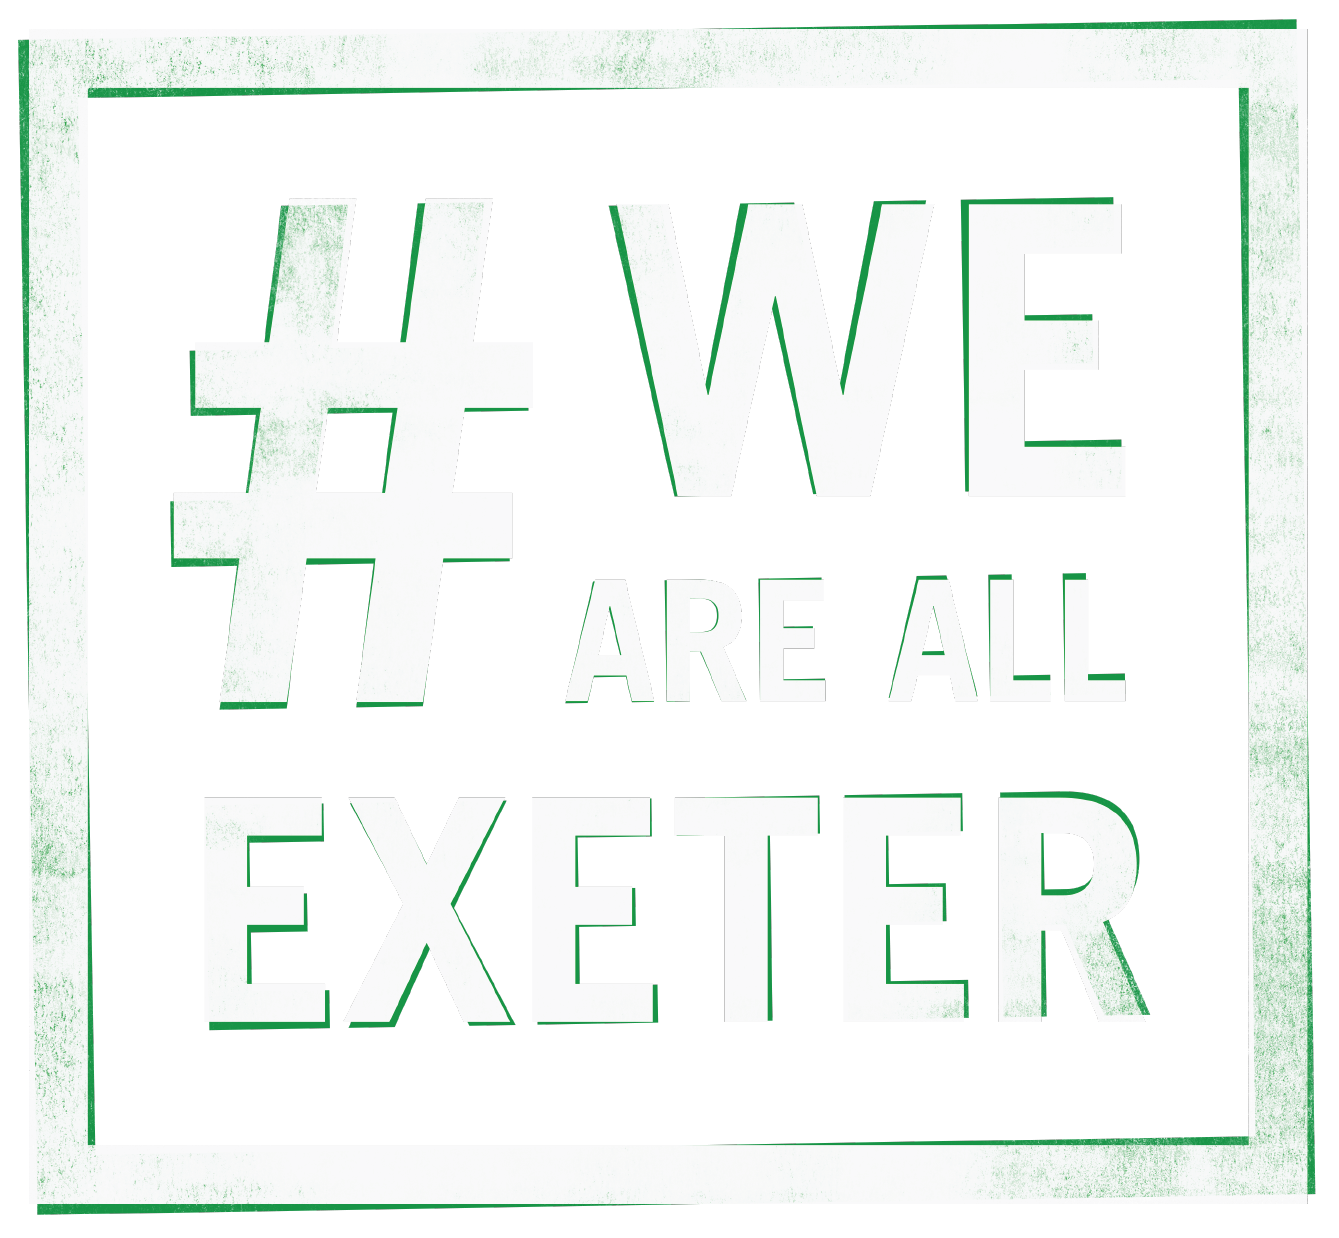 We are all Exeter